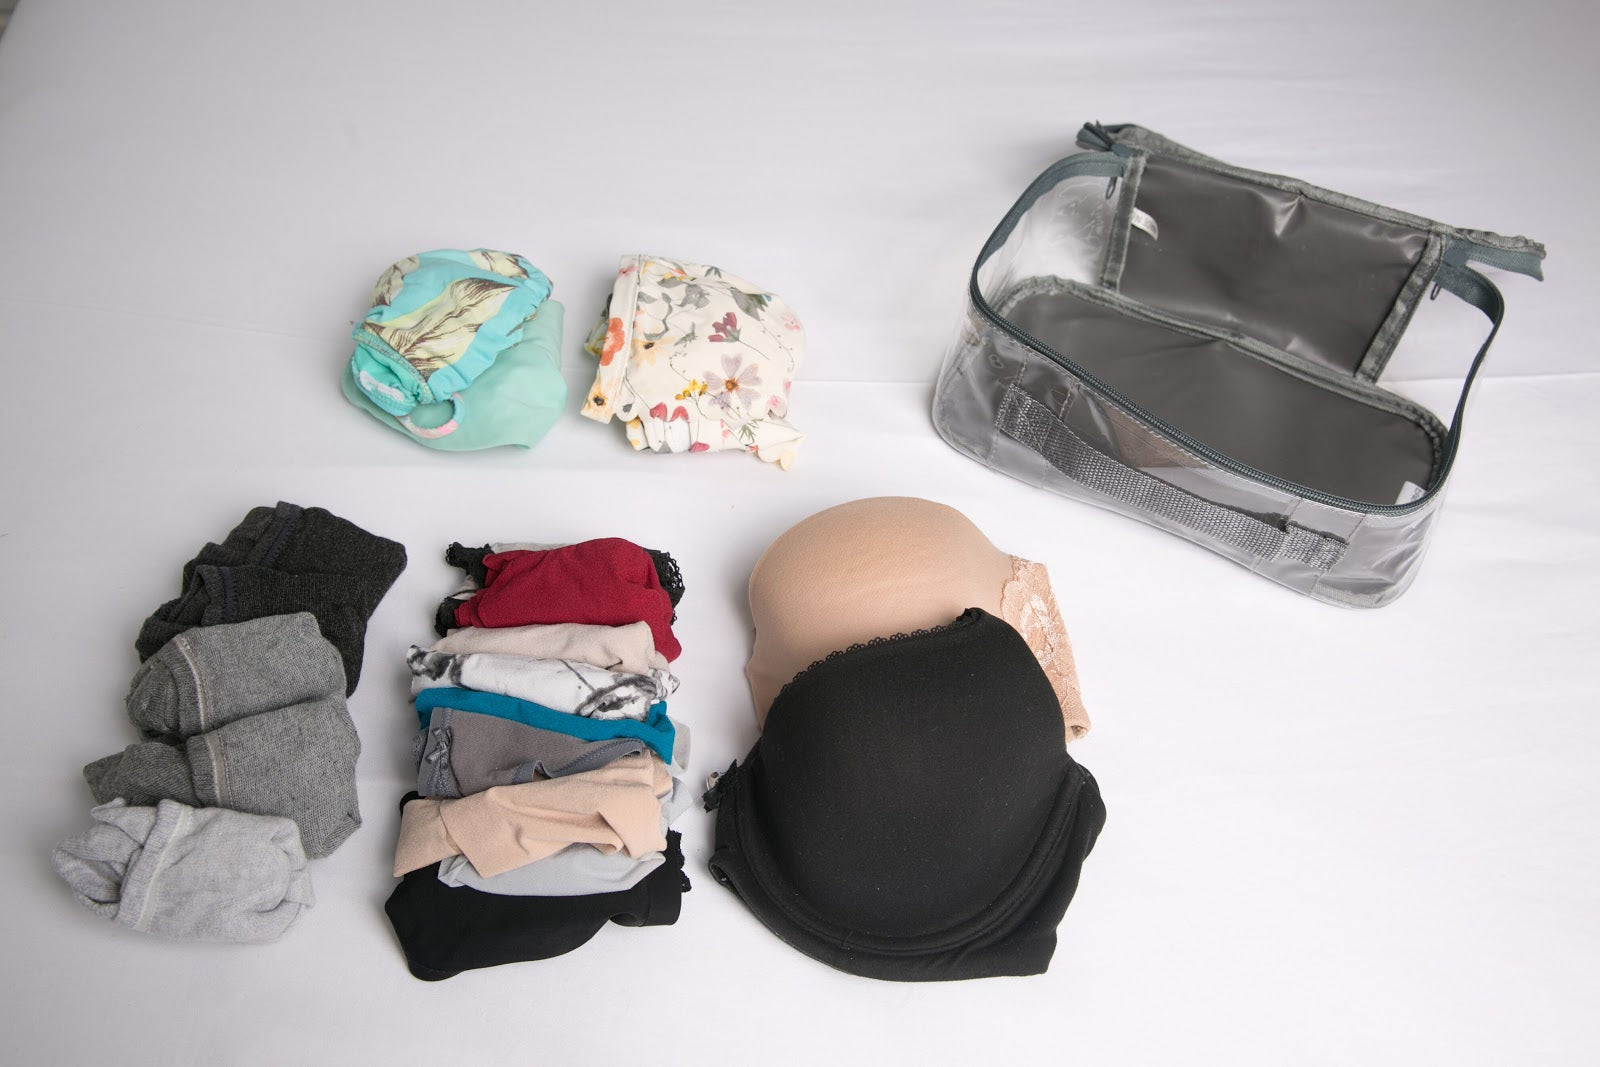 How to pack underwear for travel